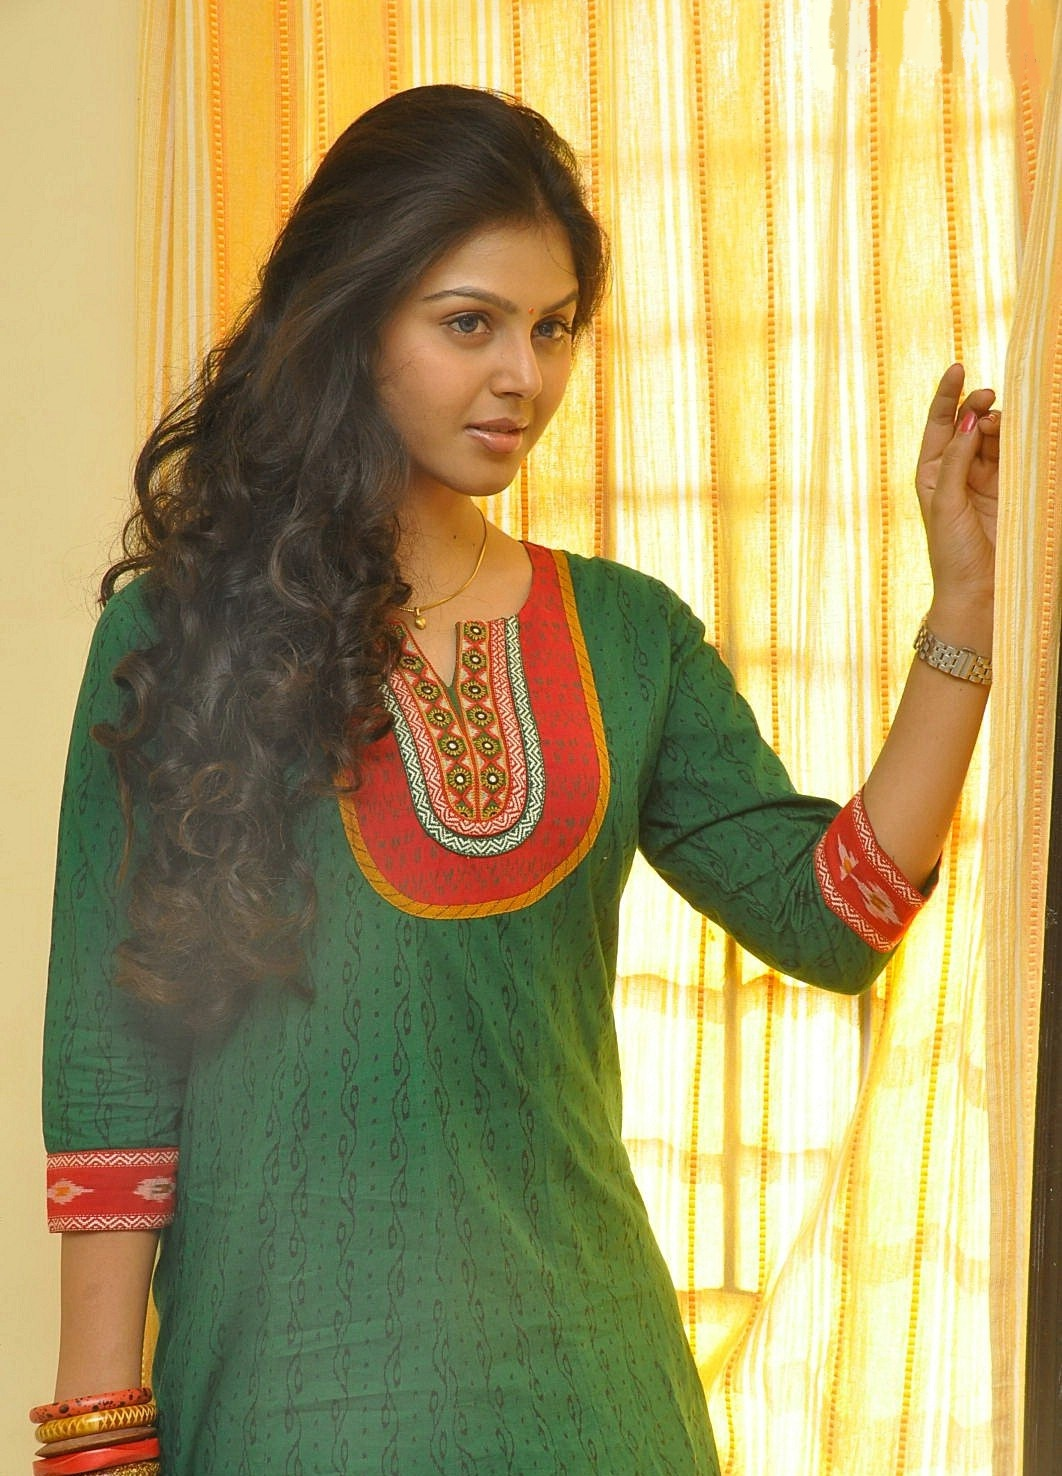 Monal Gajjar Looks Absolutely Gorgeous In Green Dress In Her Latest Photoshoot